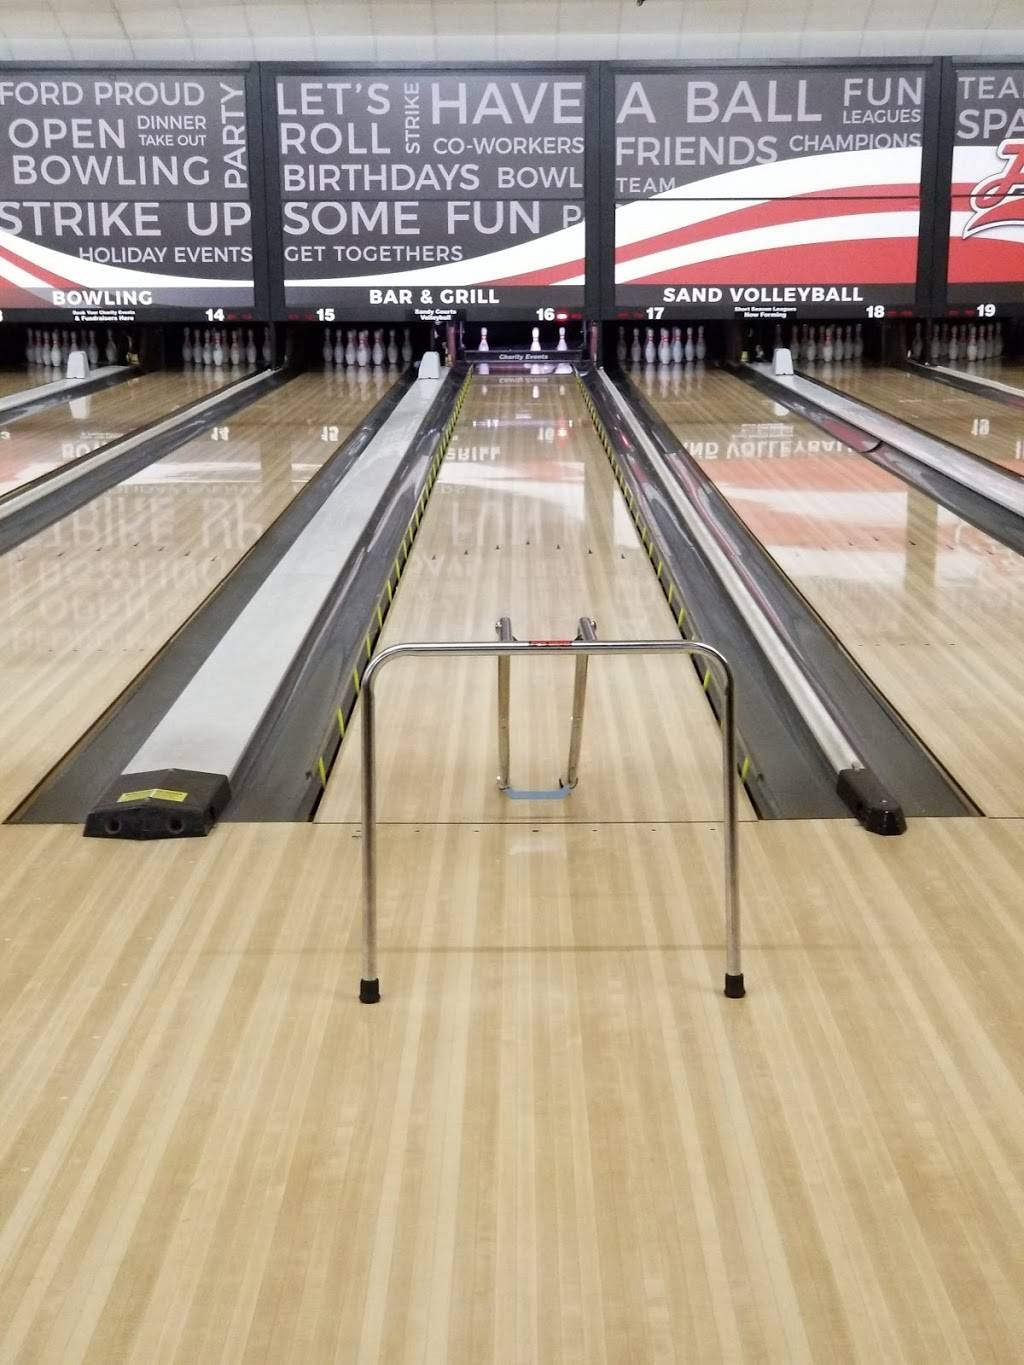 Forest View Lanes - Recreation Bar and Grill - bowling alley  | Photo 4 of 10 | Address: 2345 W Dean Rd, Temperance, MI 48182, USA | Phone: (734) 847-4915